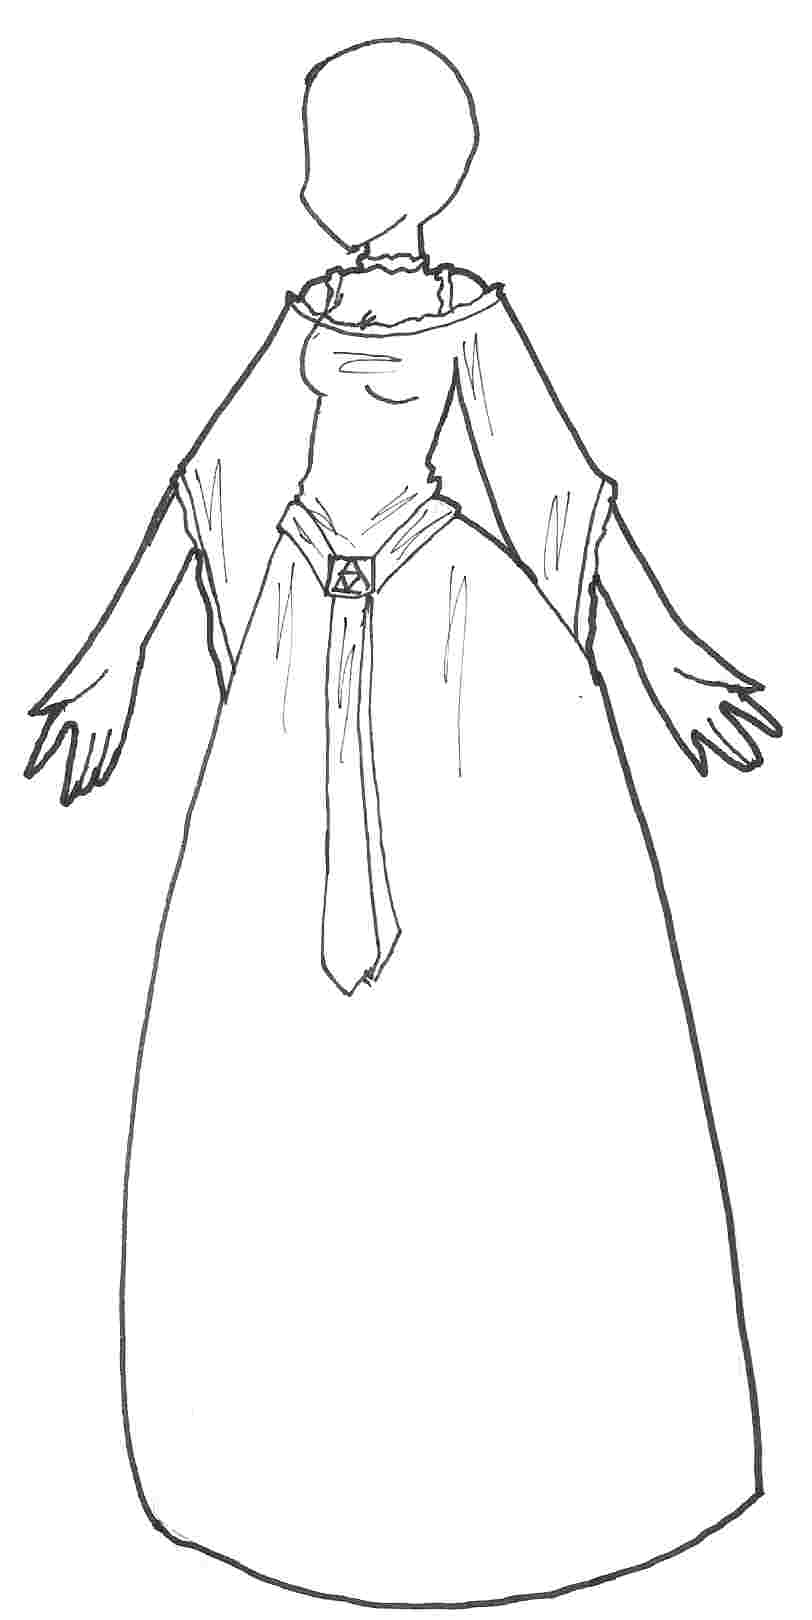 Prom Dress Cartoon Images Sketch Coloring Page